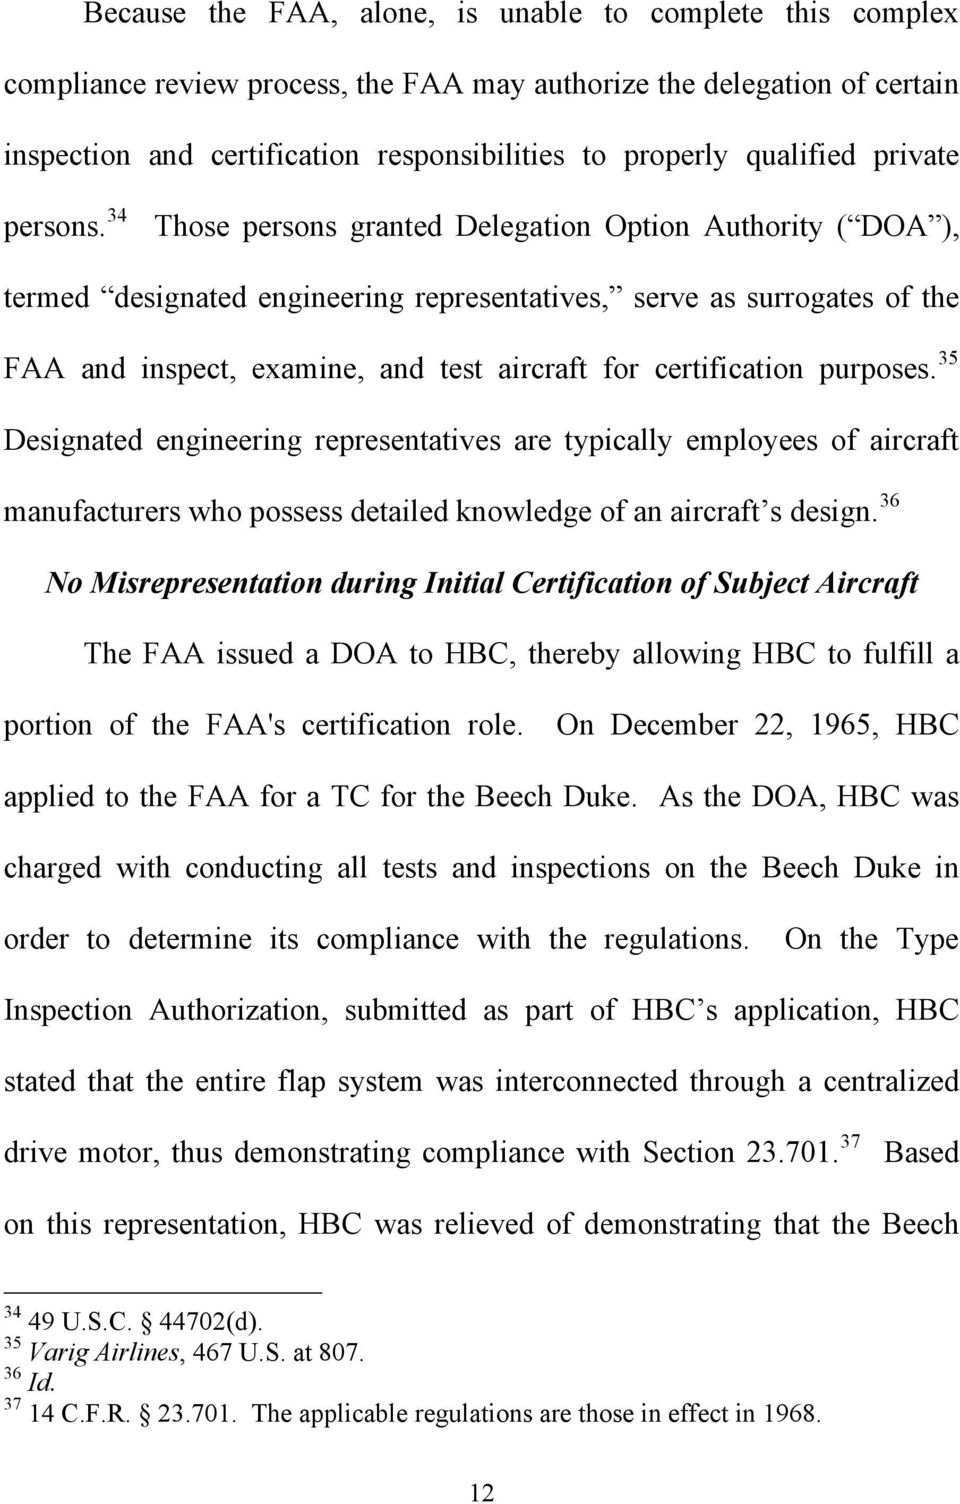 34 Those persons granted Delegation Option Authority ( DOA, termed designated engineering representatives, serve as surrogates of the FAA and inspect, examine, and test aircraft for certification